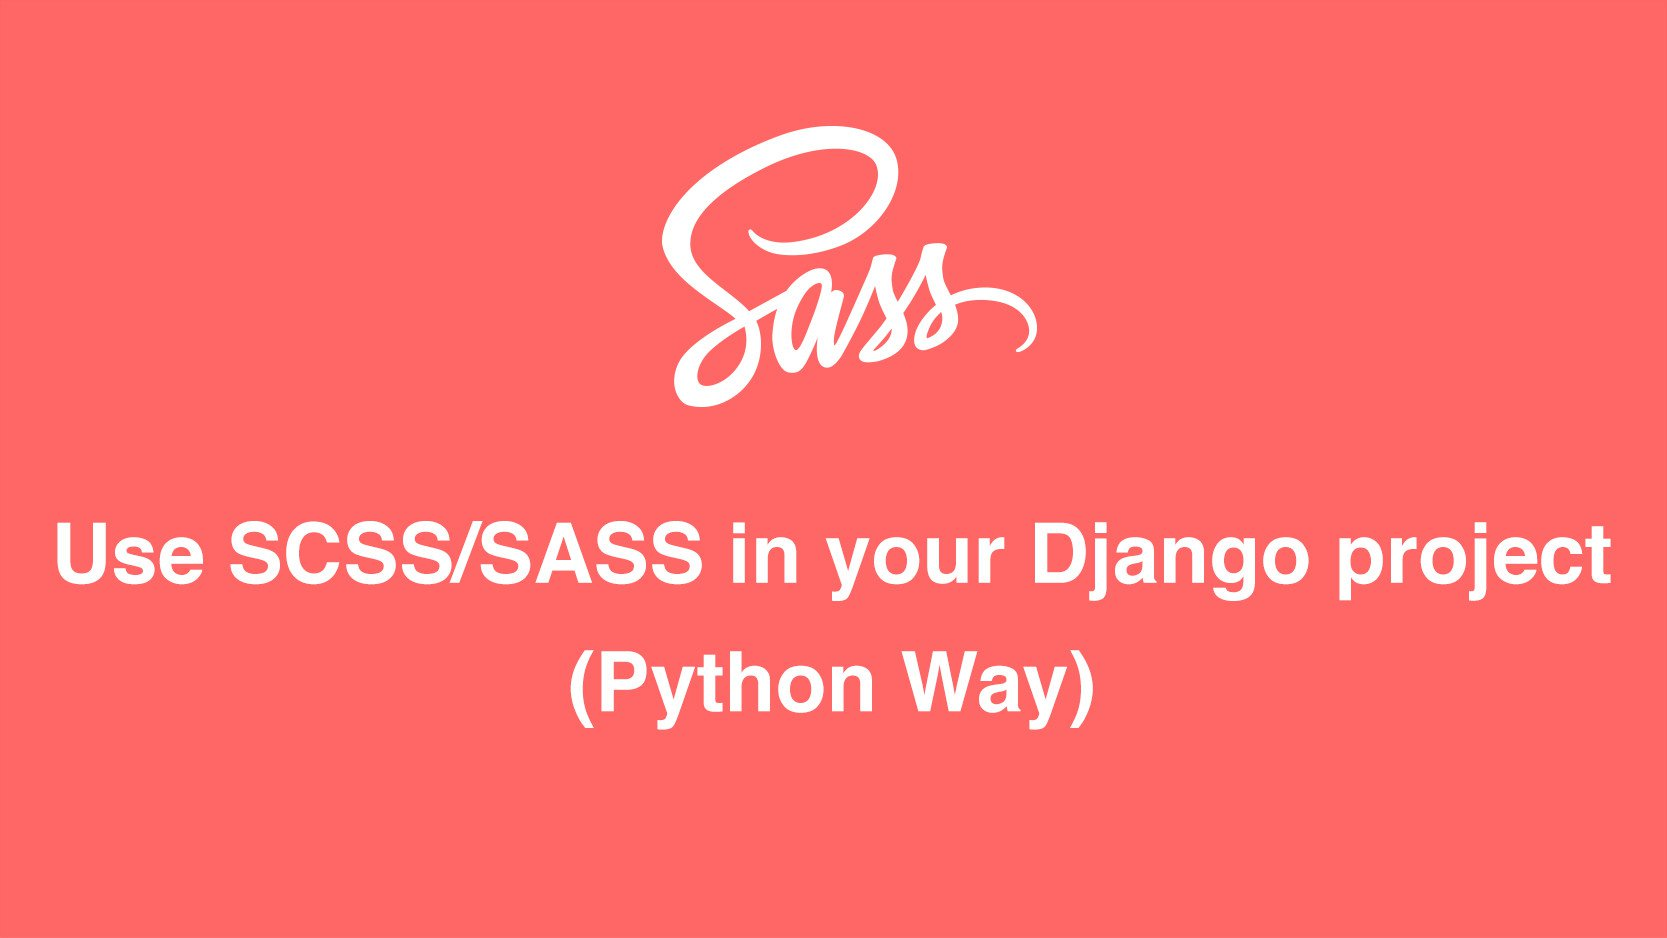 How to use SCSS/SASS in your Django project (Python Way